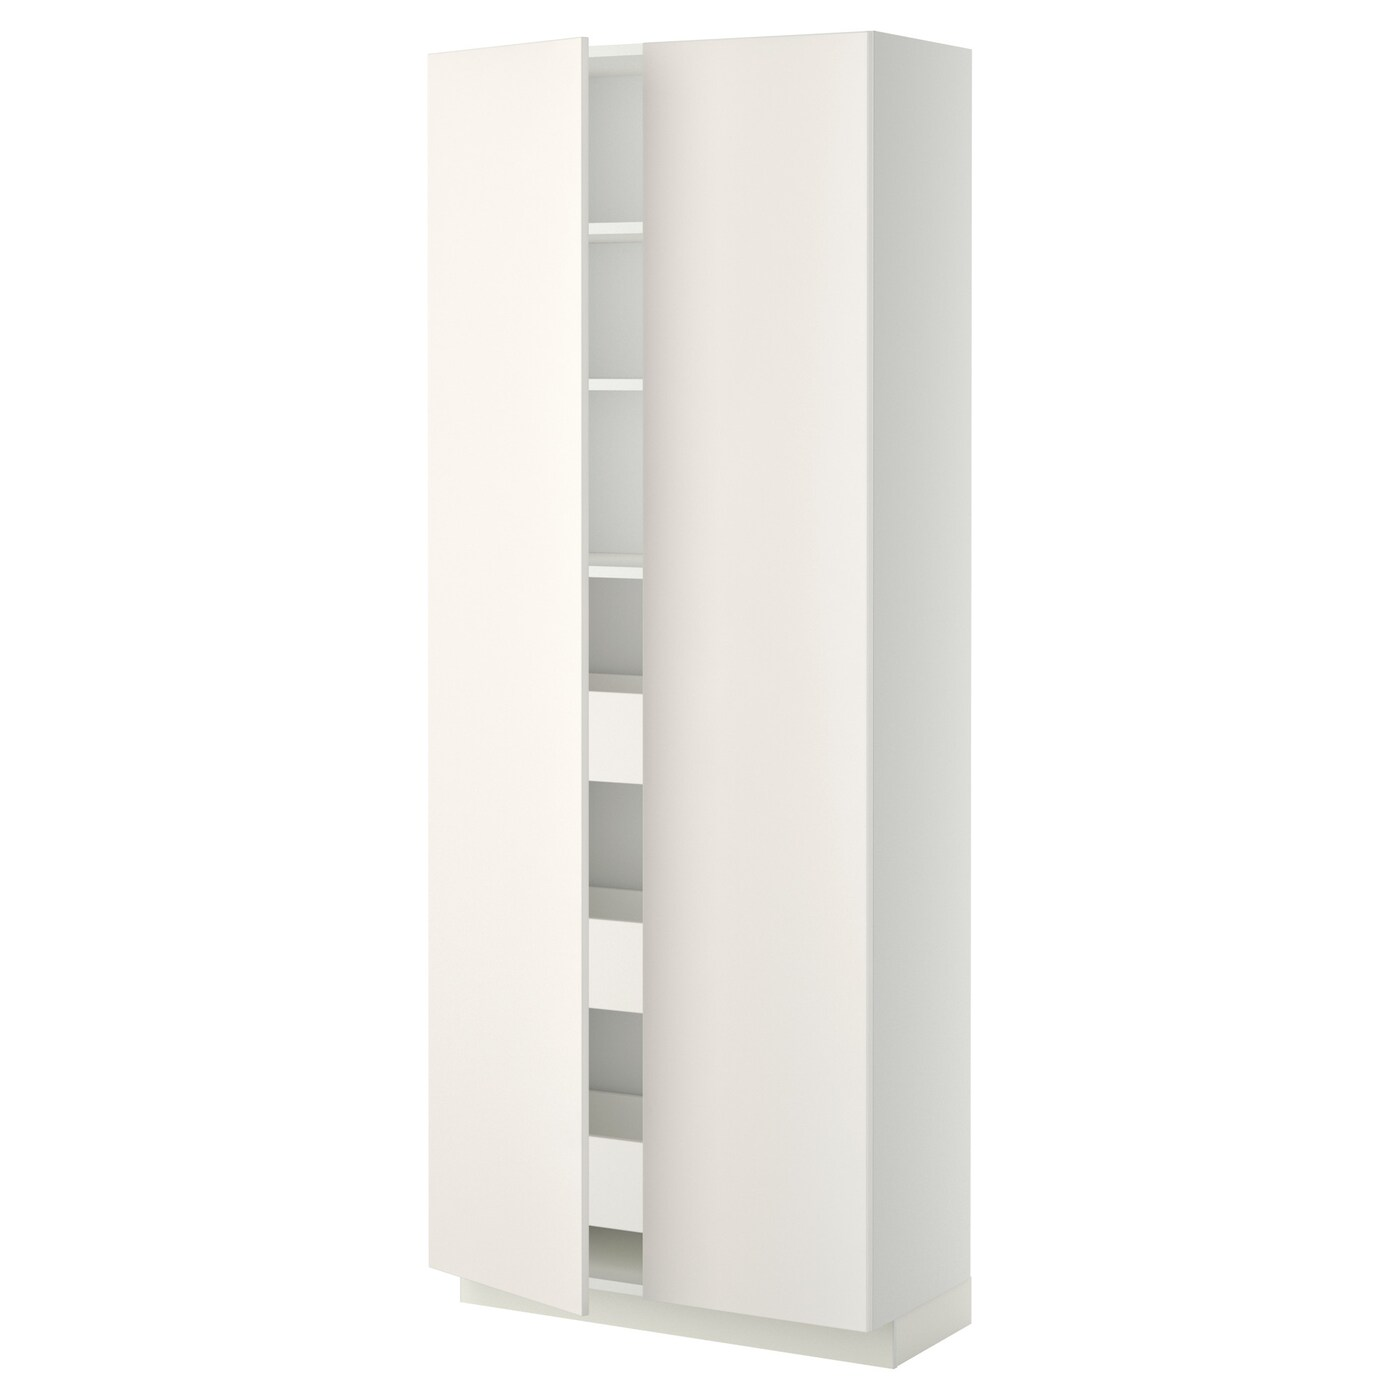 Ikea Küchenschrank Veddinge Metod Maximera Hi Cab With Drawers 2 Doors White Veddinge